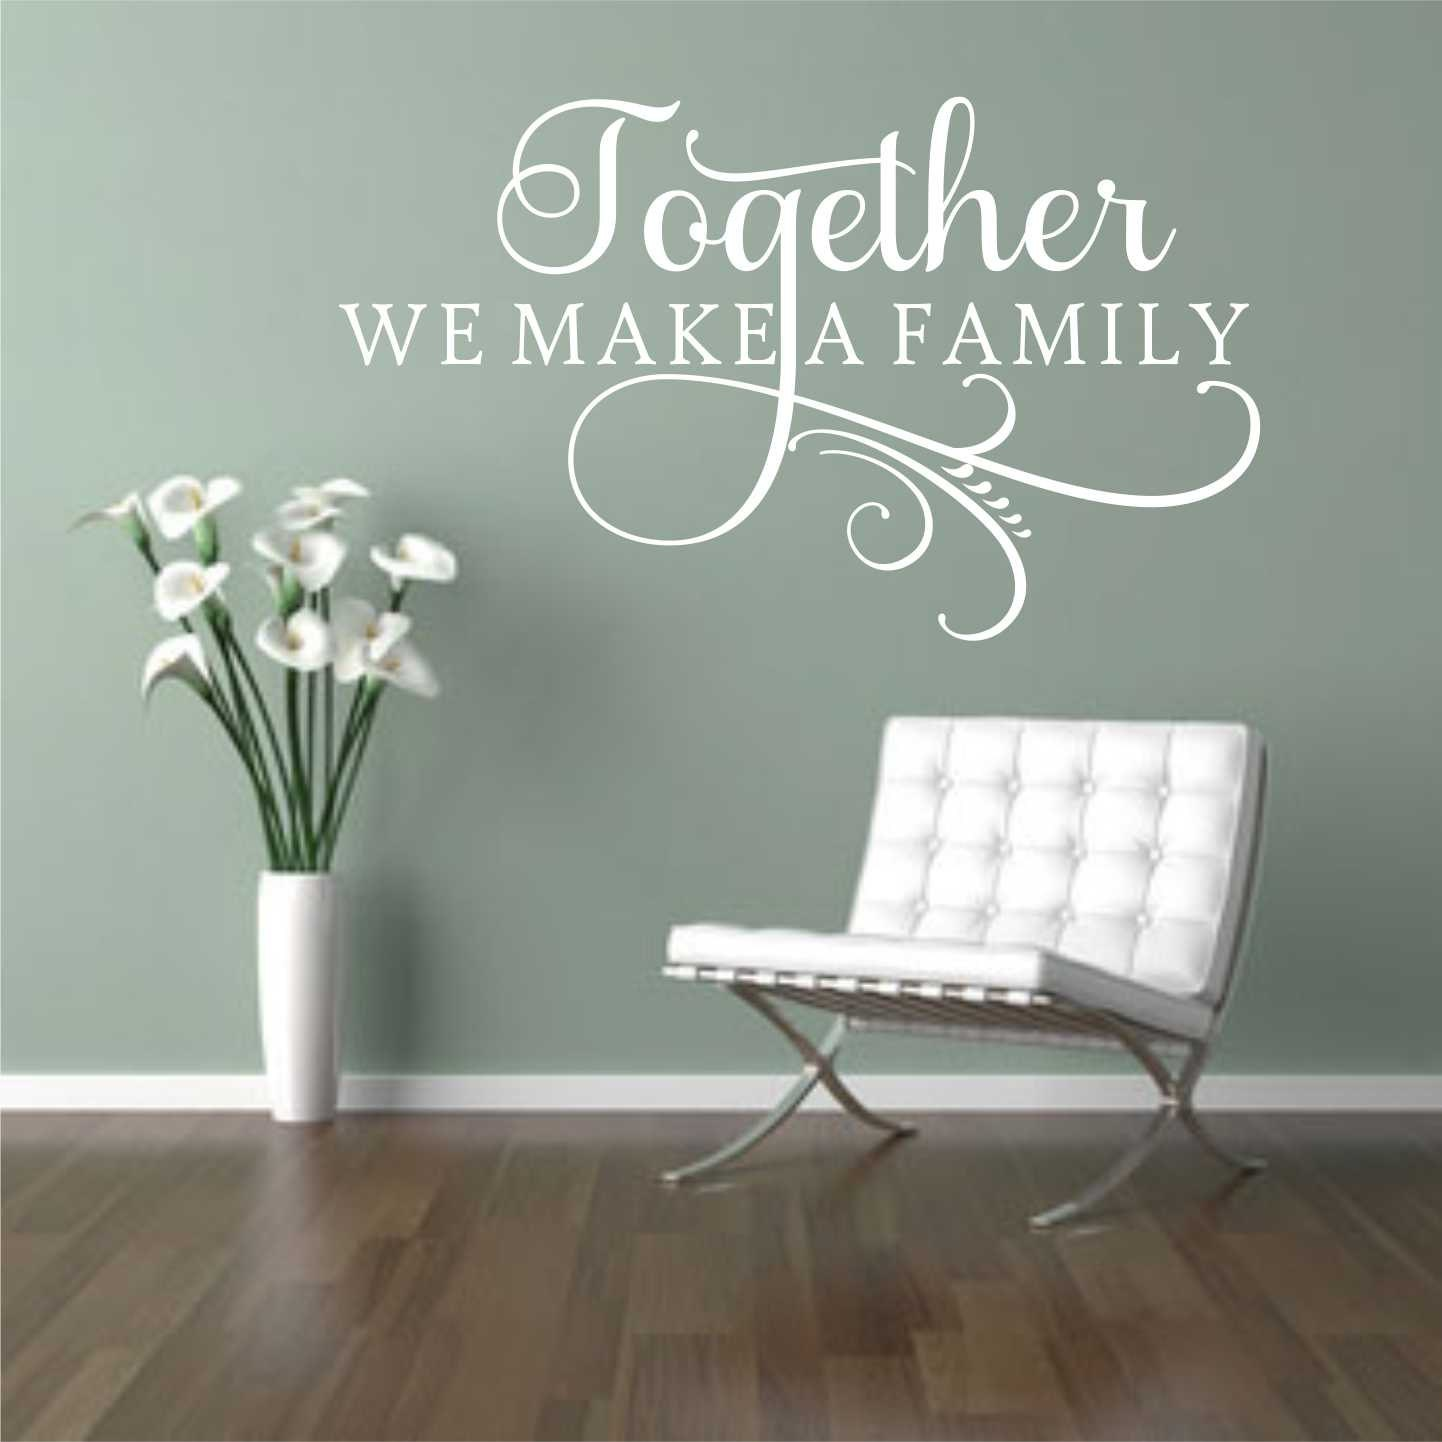 together make family decal vinyl wall lettering vinyl wall decals vinyl decals vinyl lettering wall decals swirl decal family decal